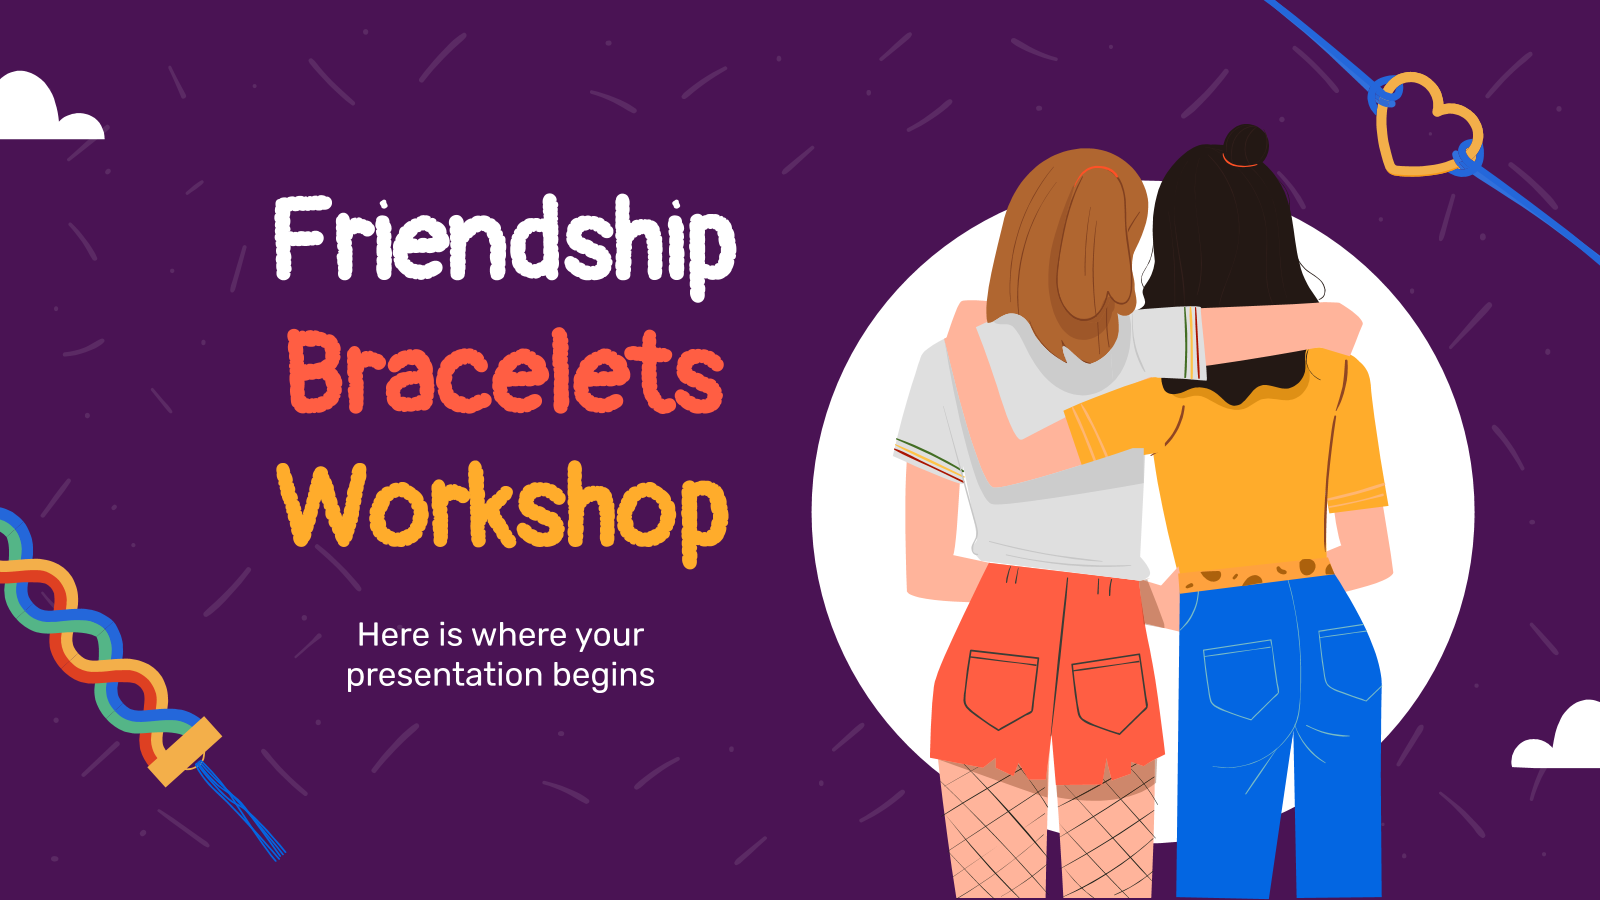 Friendship Bracelets Workshop presentation template